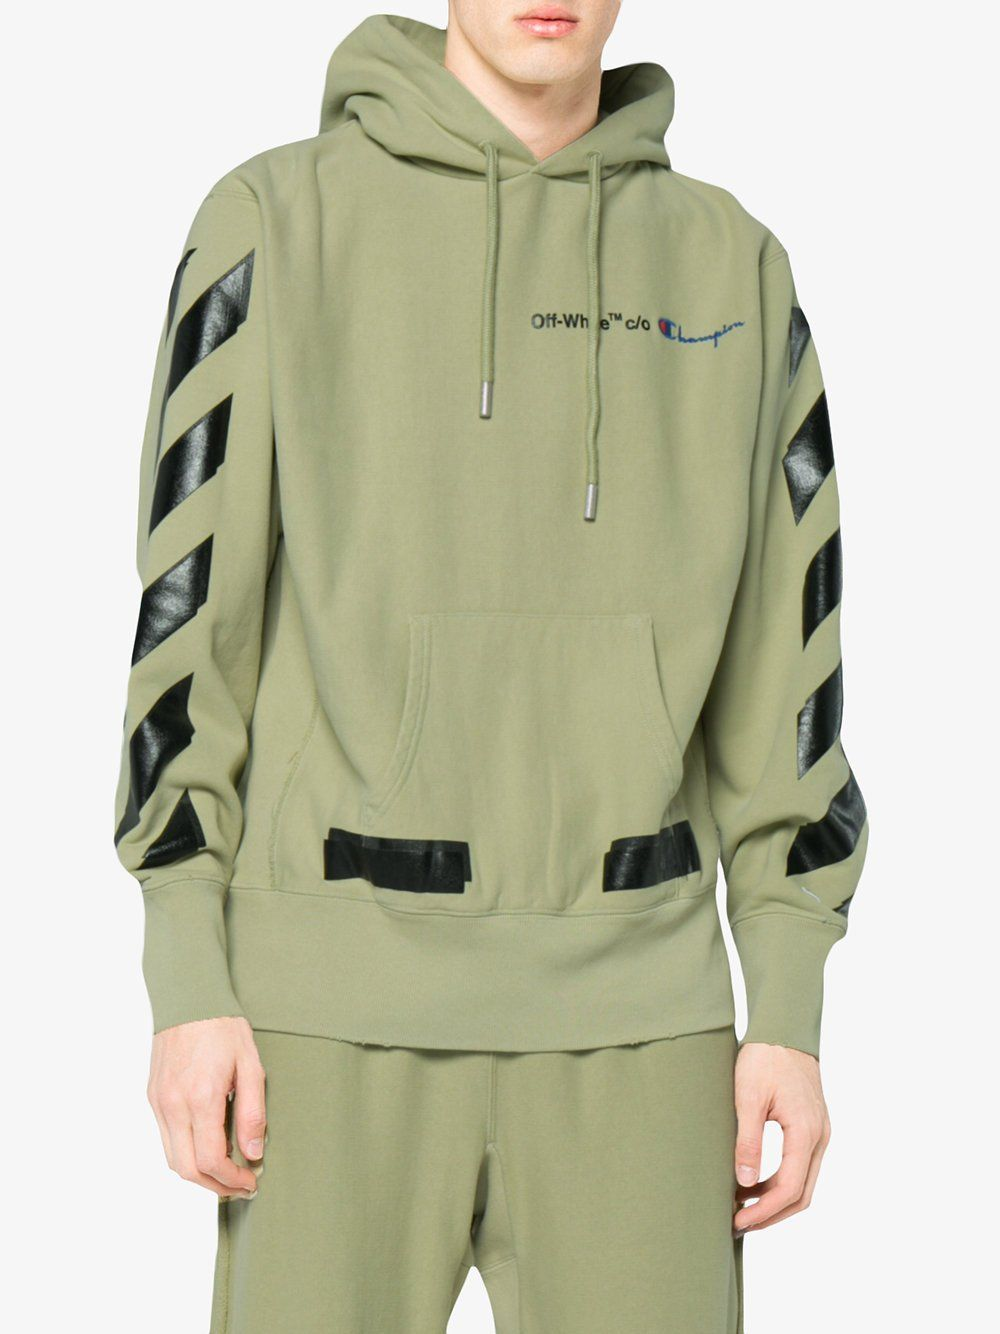 Camo Green Champion Hoodie By Off White Green Champion Hoodie Champion Hoodie Hoodies